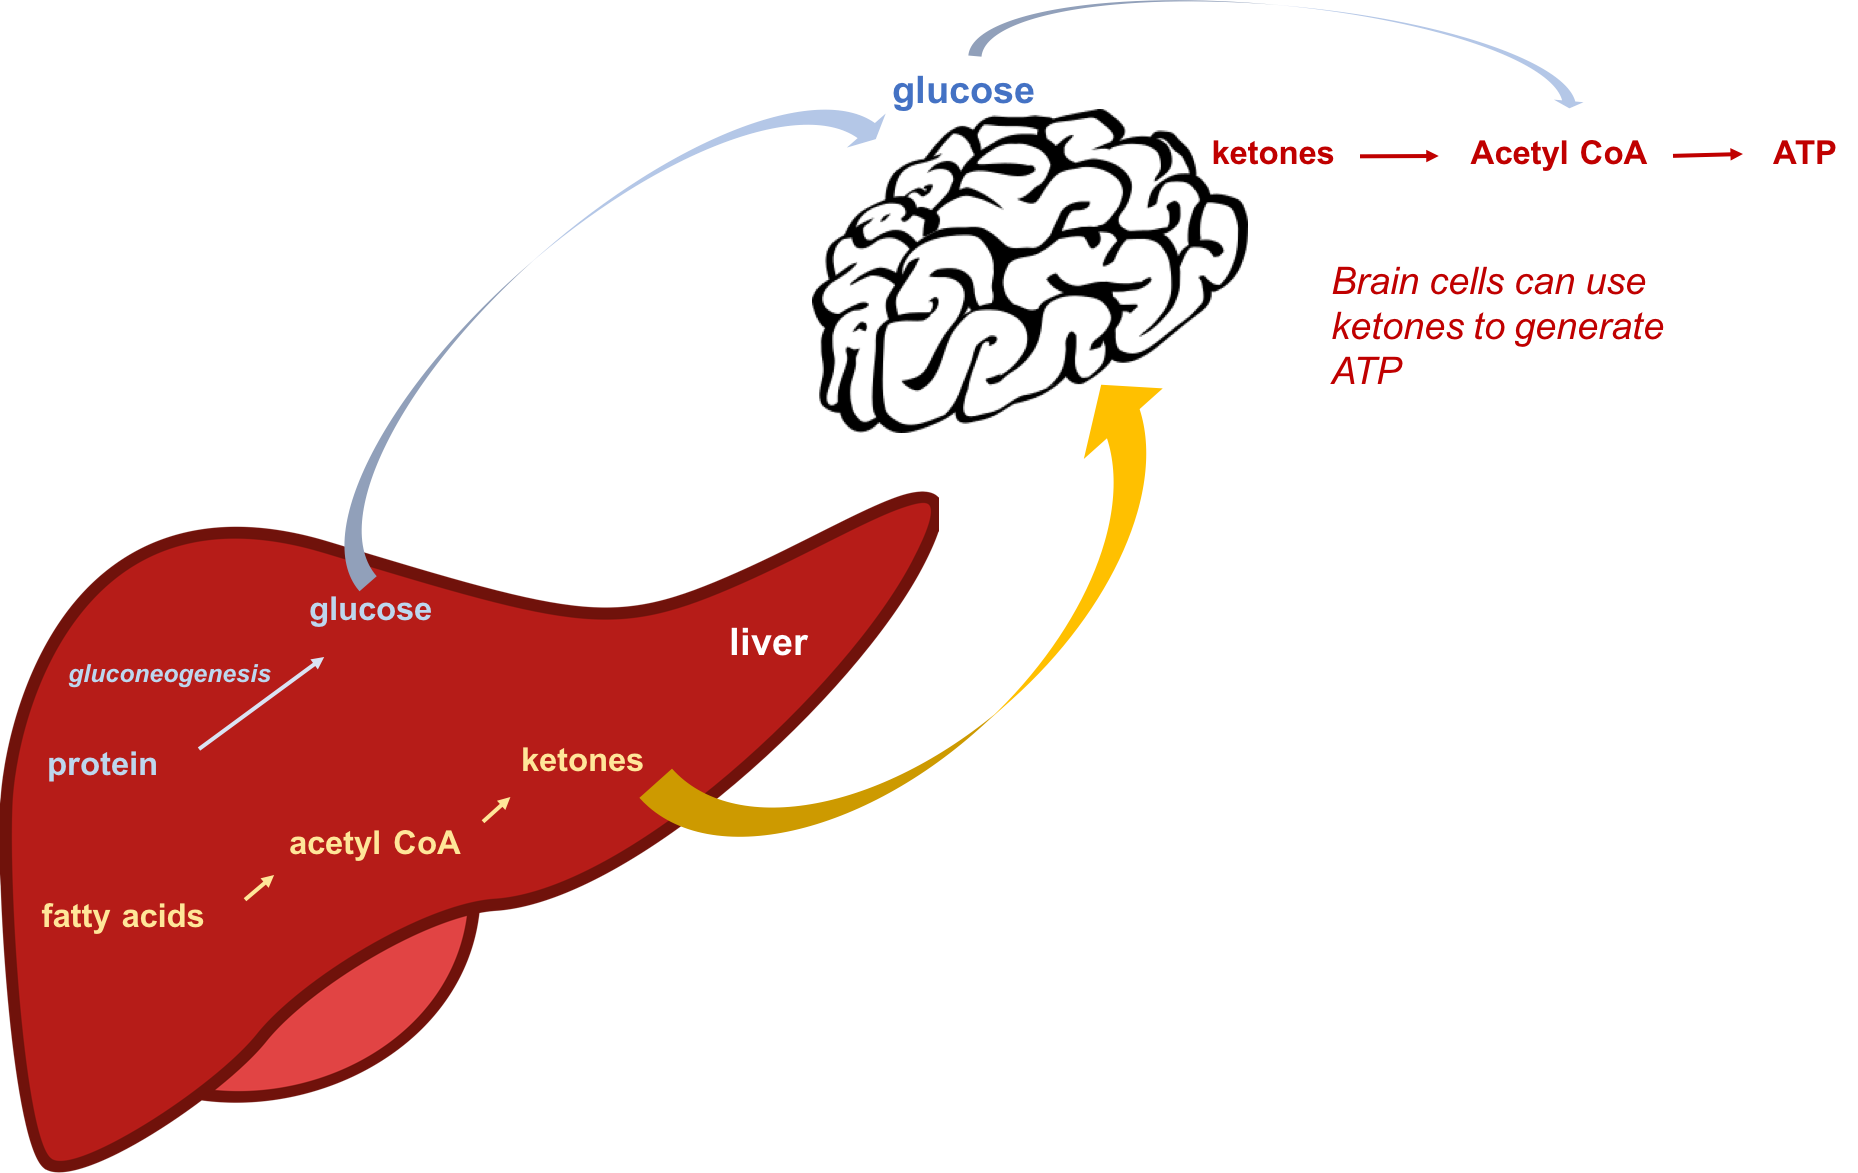 Schematic showing that during starvation or when consuming a low-carbohydrate diet, protein (amino acids) can be used to make glucose by gluconeogenesis, and fats can be used to make ketones in the liver. The brain can adapt to using ketones as an energy source in order to conserve protein and prevent muscle wasting.